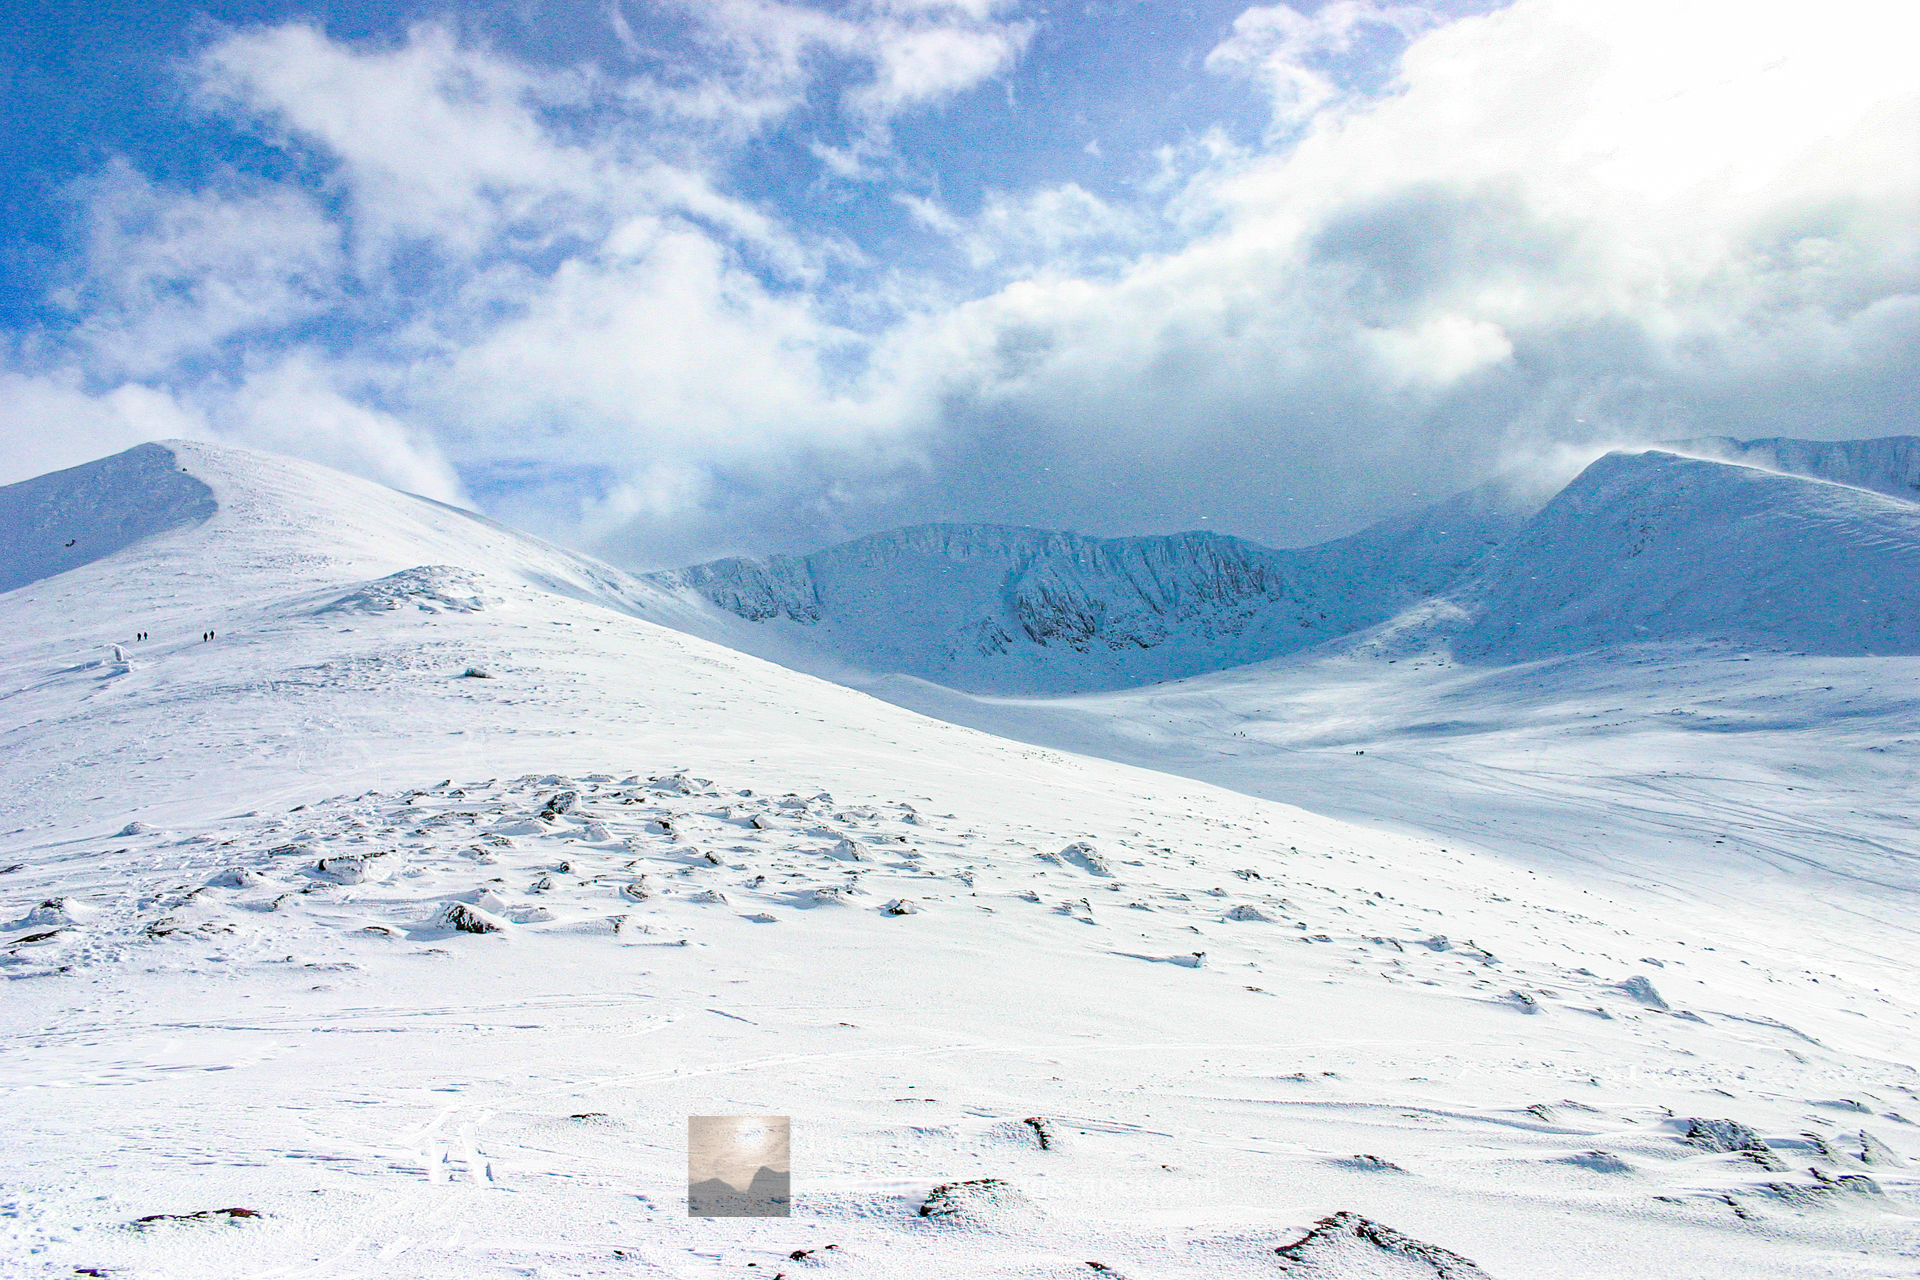 Winter in Coire an t-Sneachda, The Northern Corries, Cairngorm